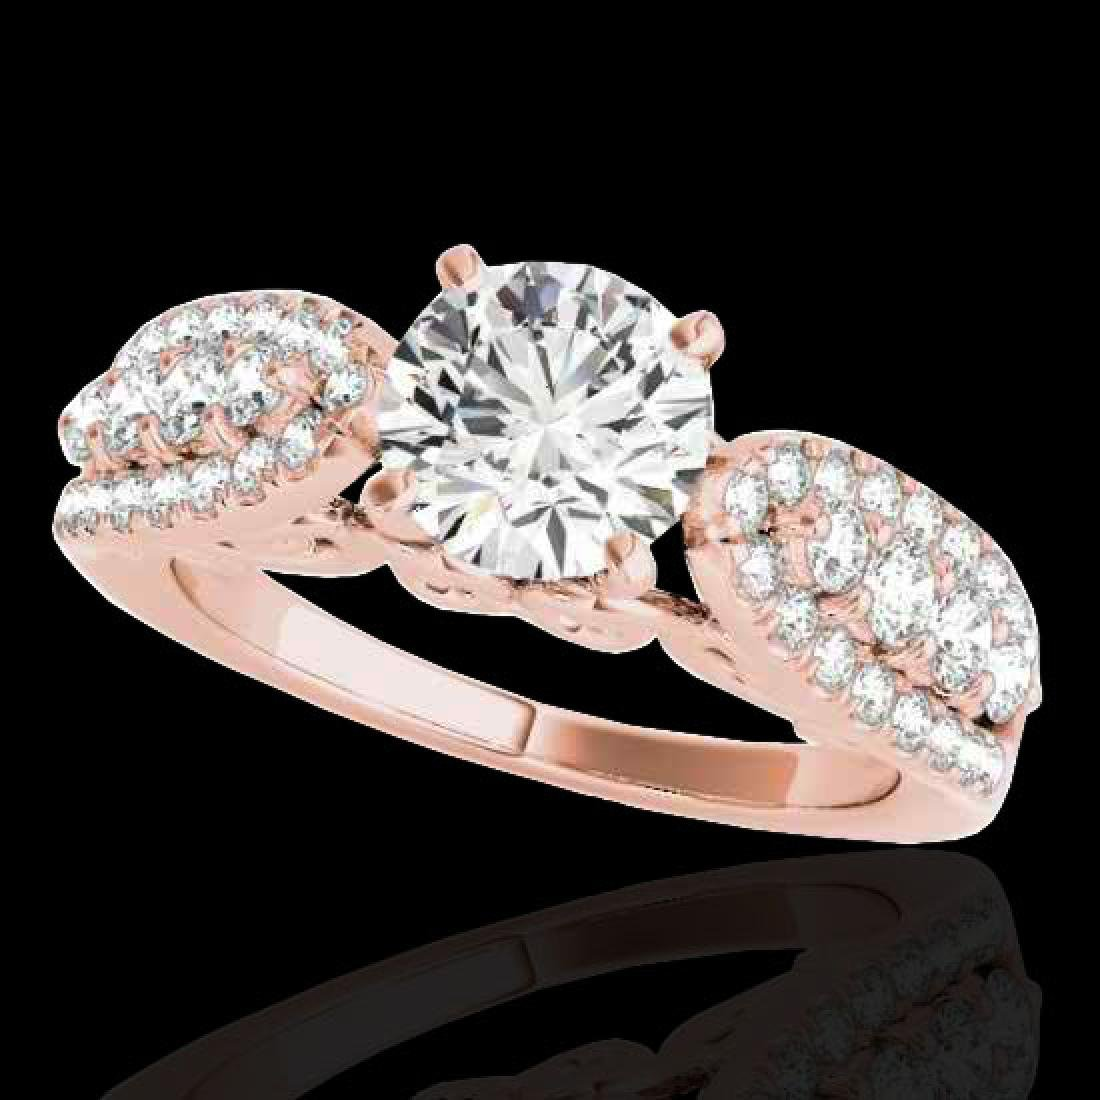 1.7 CTW H-SI/I Certified Diamond Solitaire Ring 10K